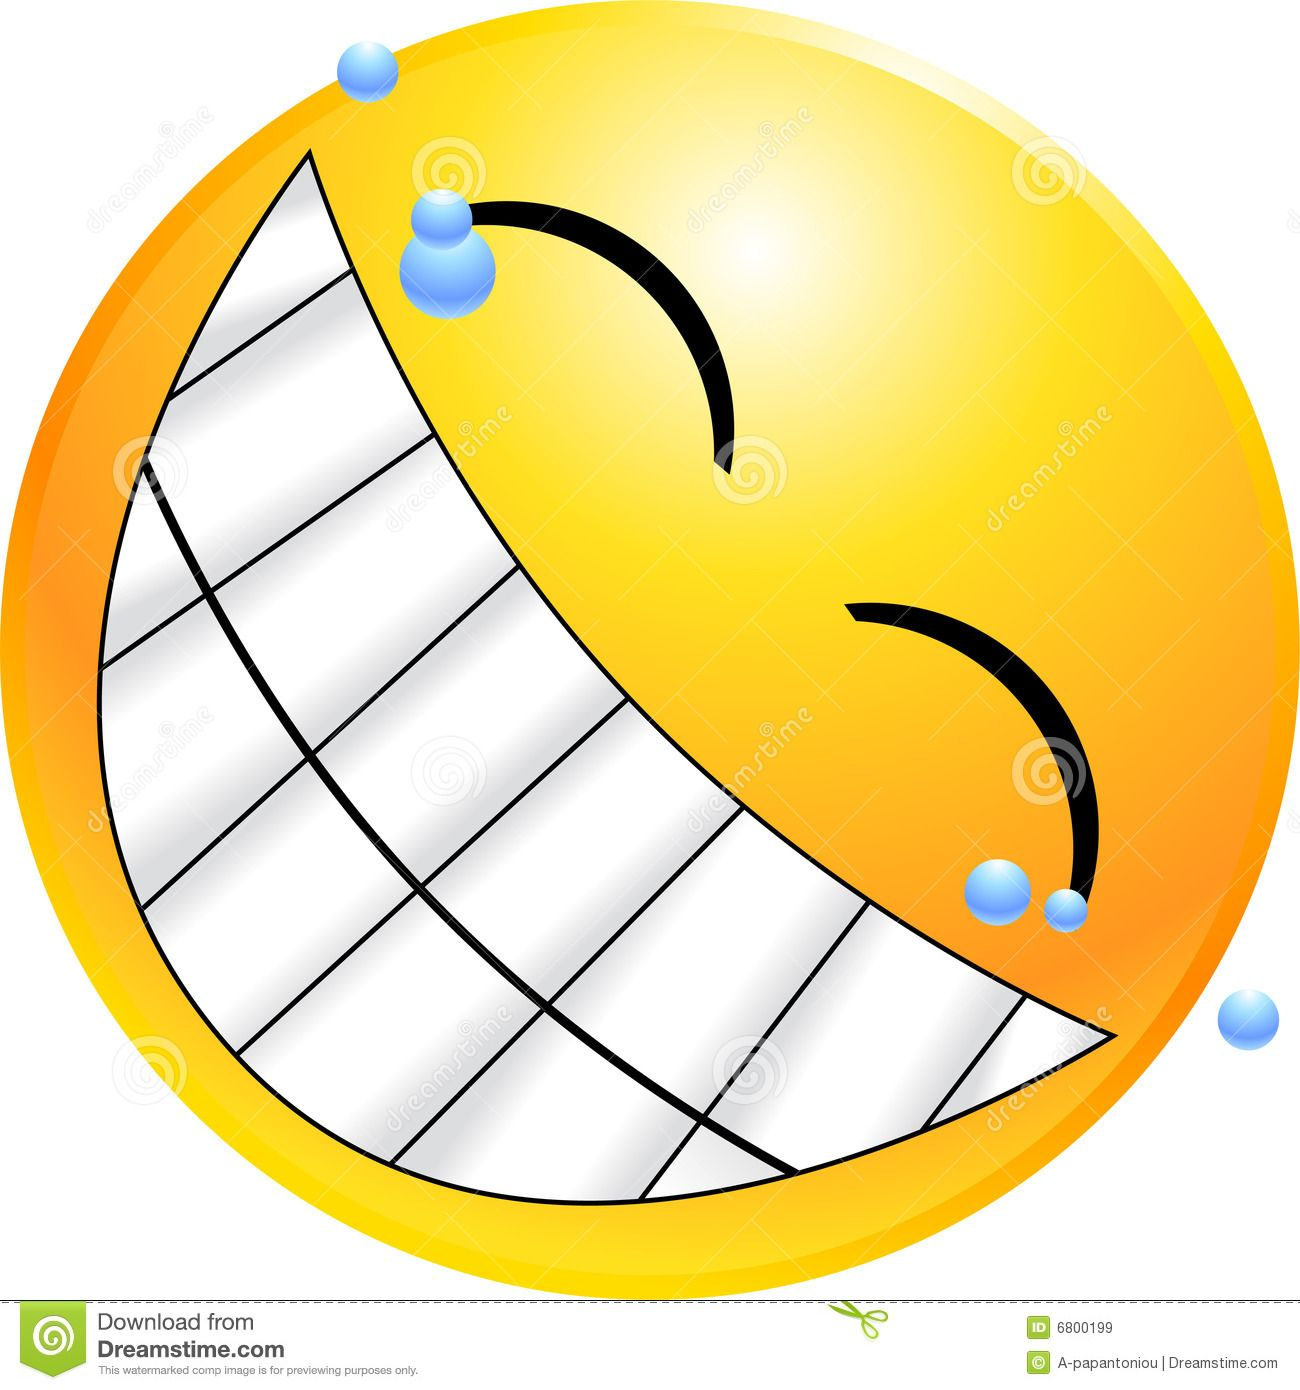 Emoticon Smiley Face Stock Photos – 4,714 Emoticon Smiley ...